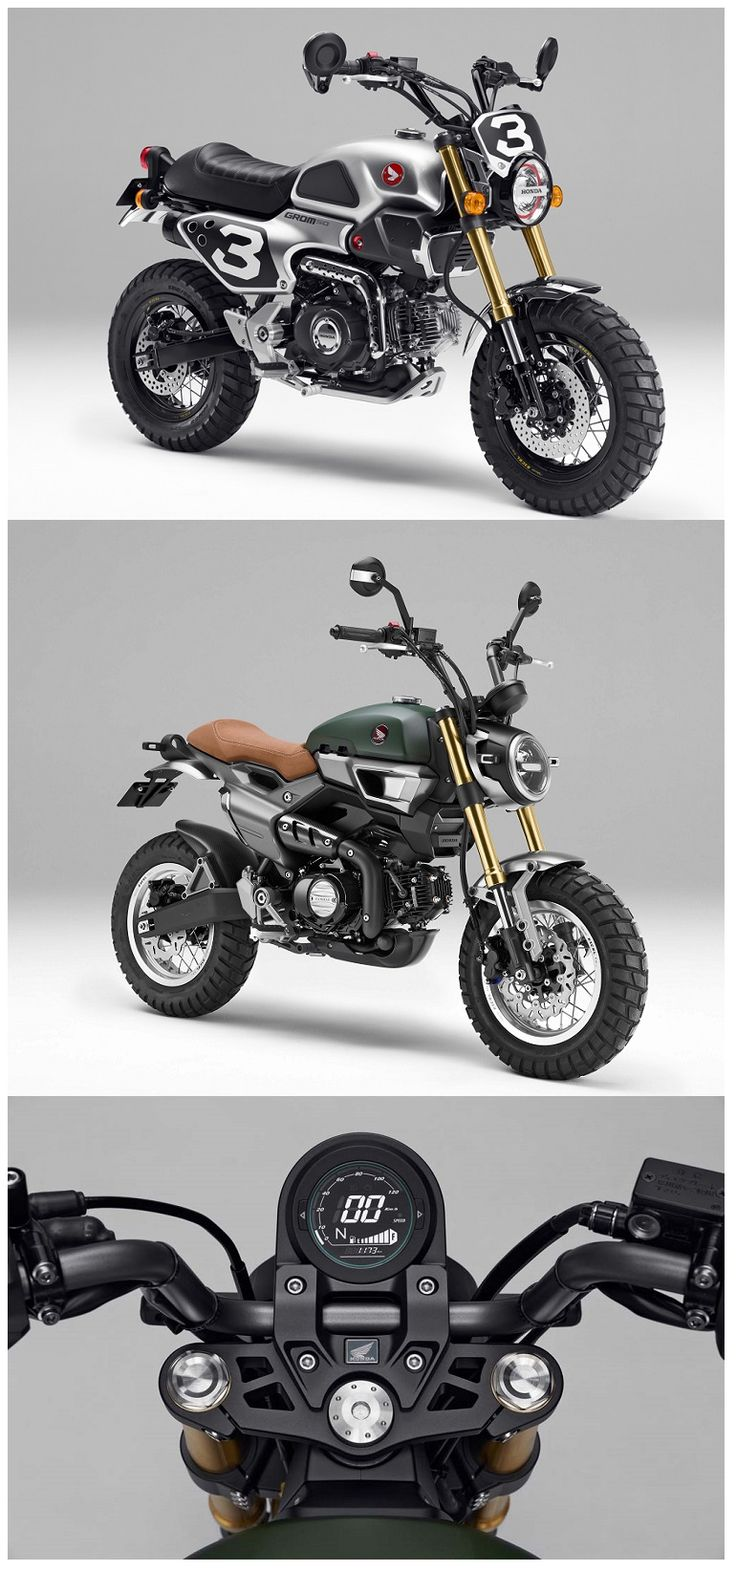 Honda Grom 50 Scrambler Concept. Would be cool if they actually produced it.